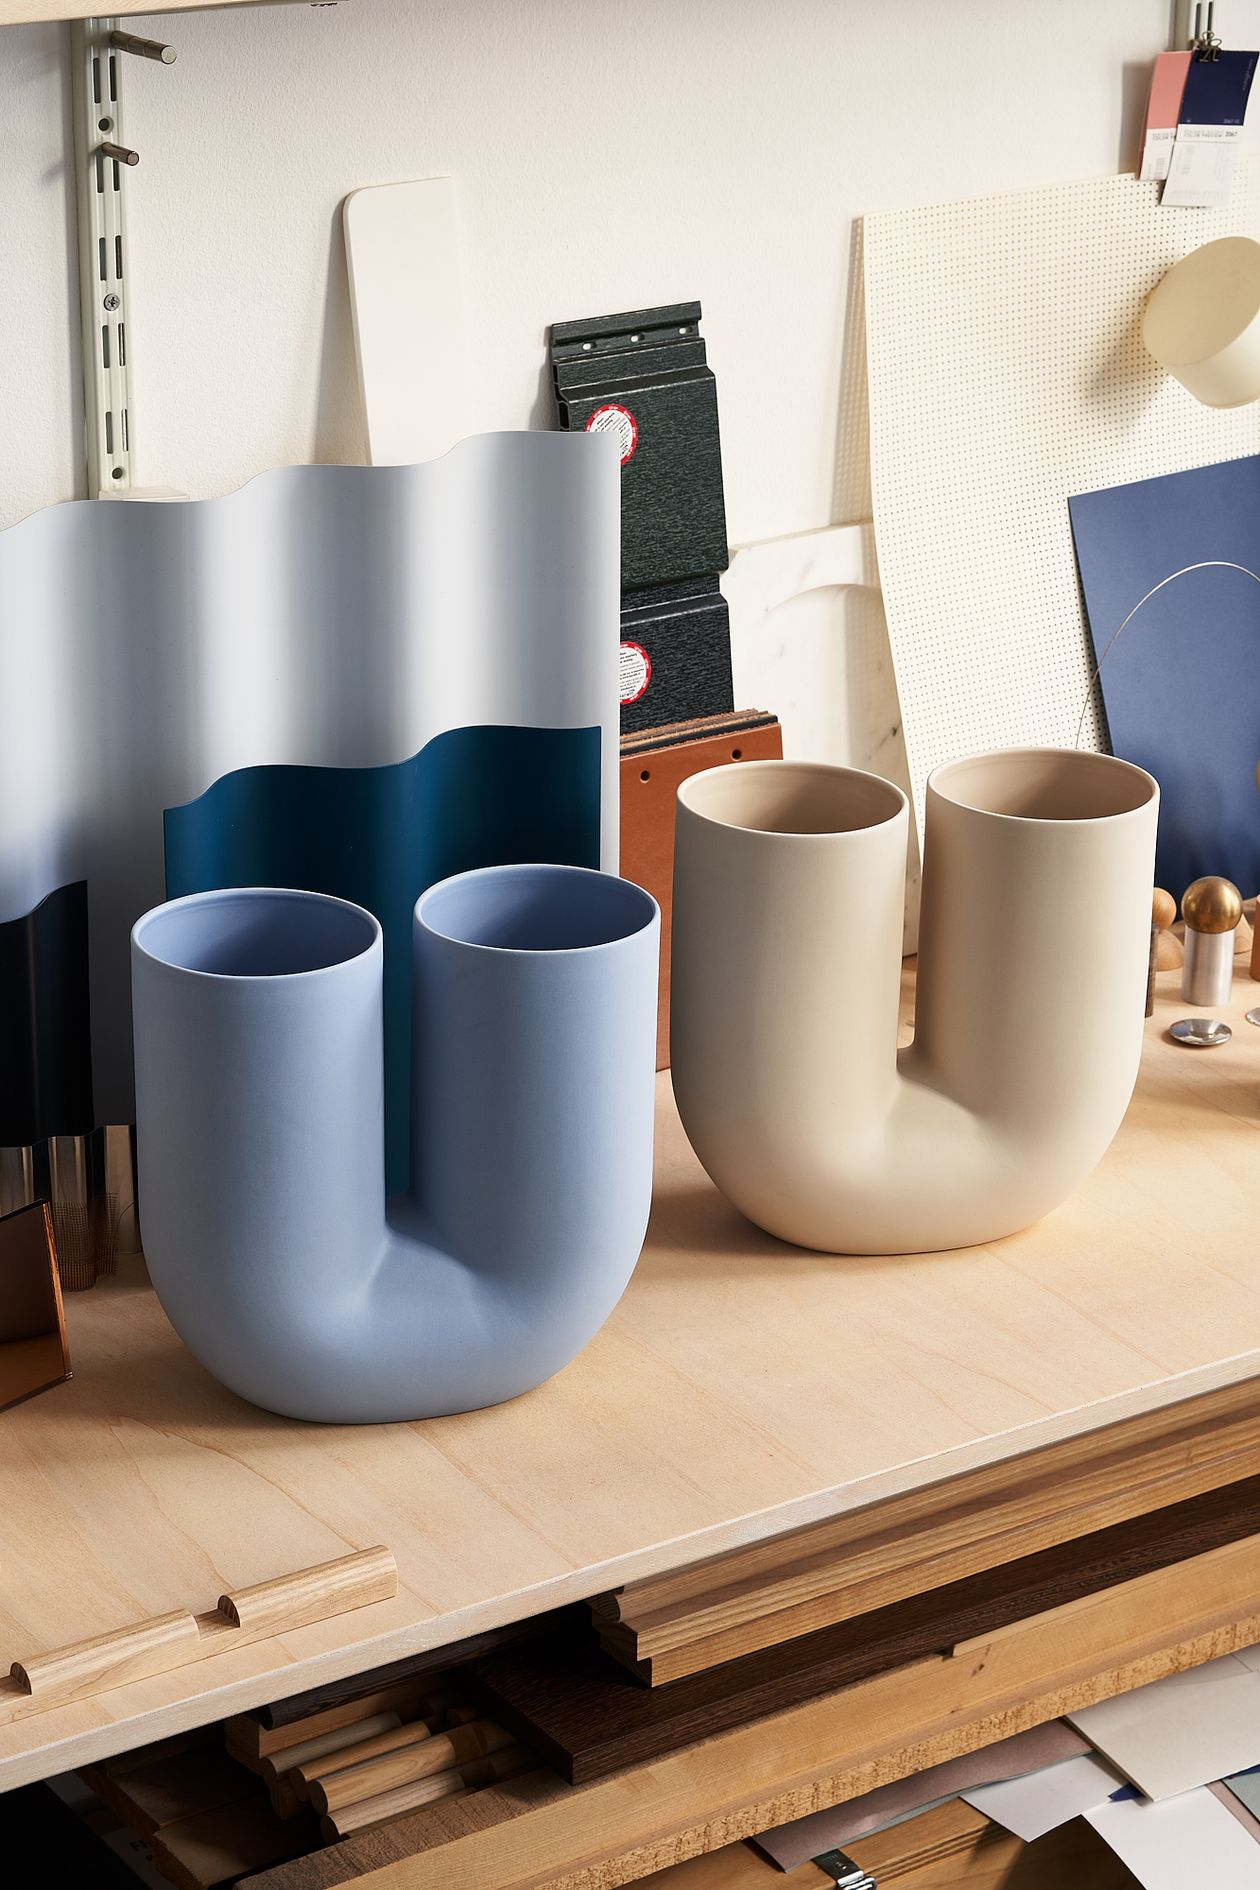 Muuto's Kink vase in light blue and sand.